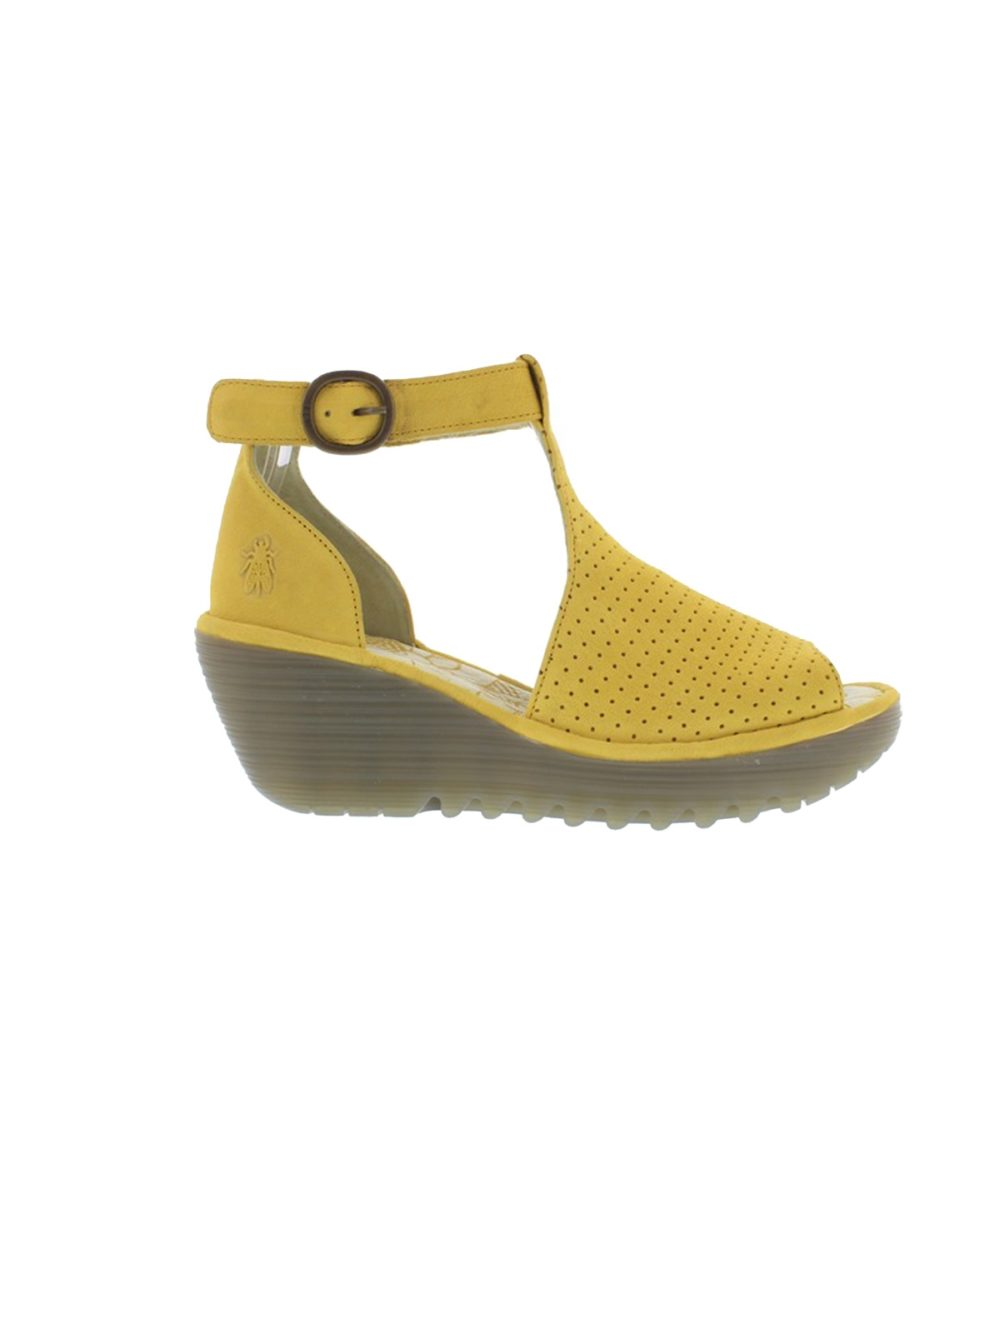 Yall Sandal Fly London Katie Kerr Women's Sandals